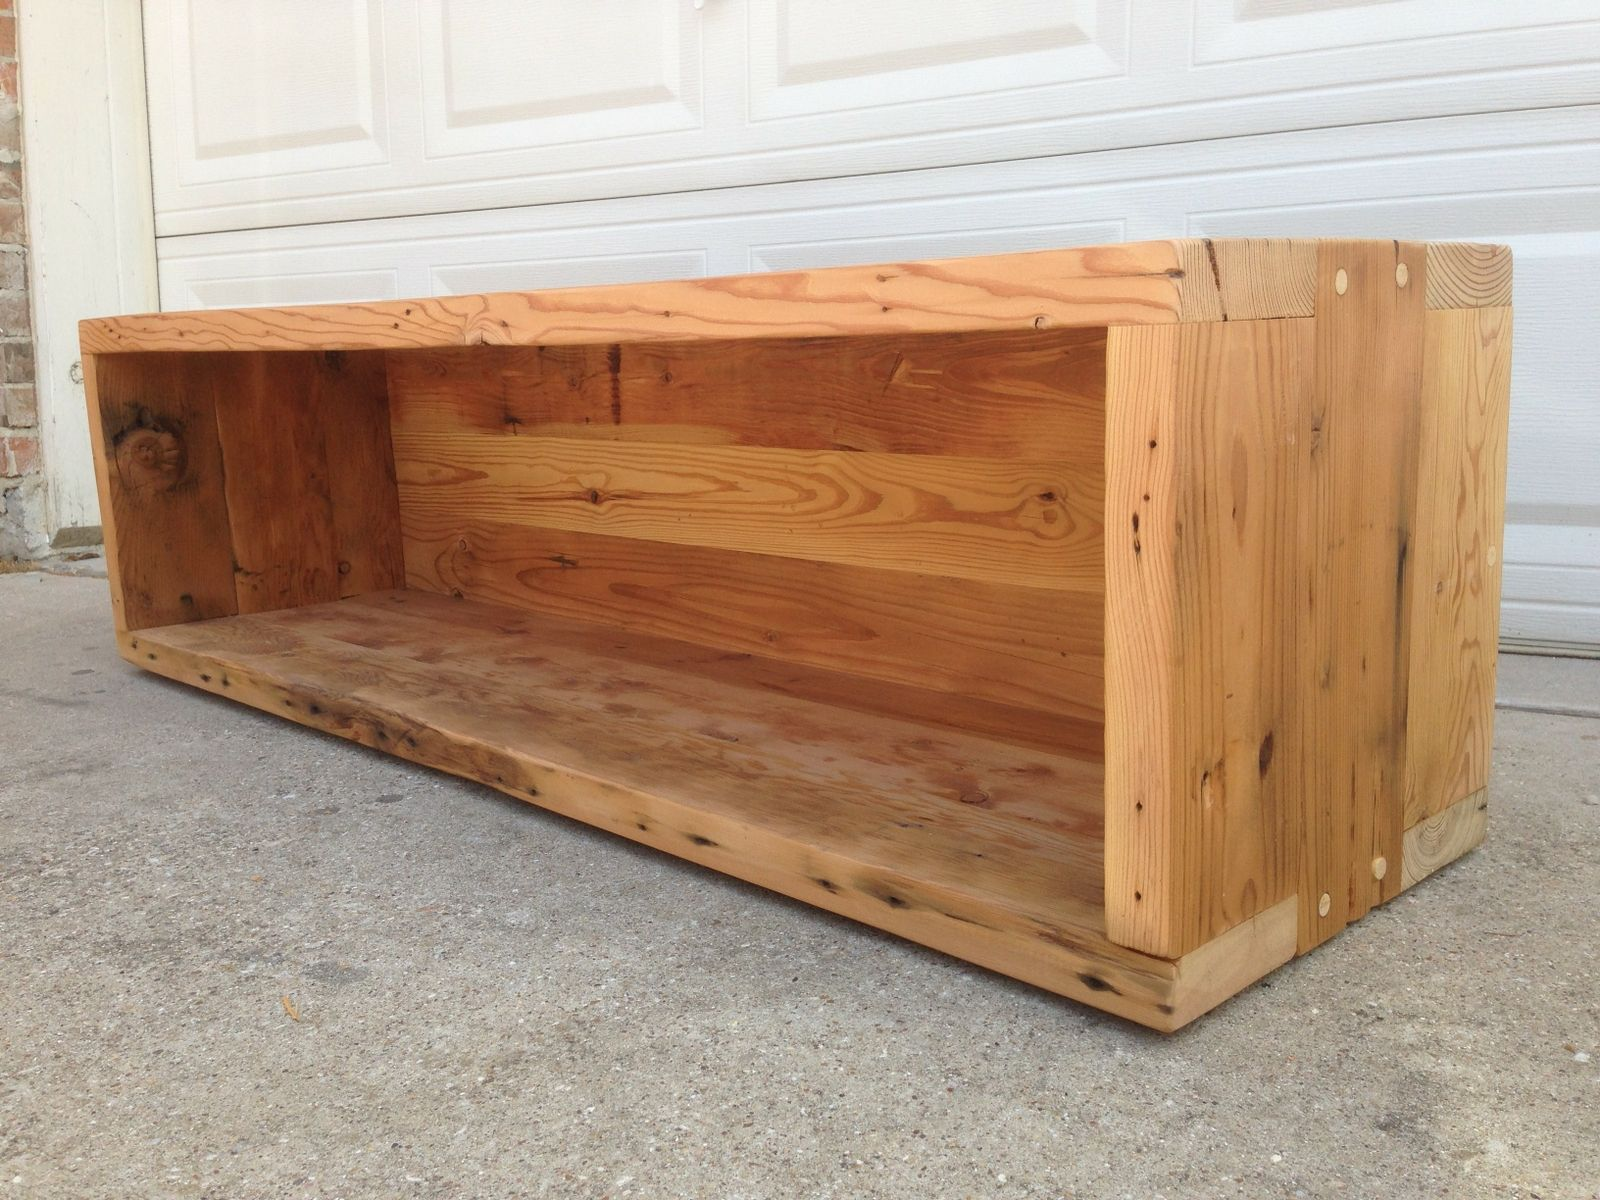 Hand Made Reclaimed Storage Bench By Callum East Design